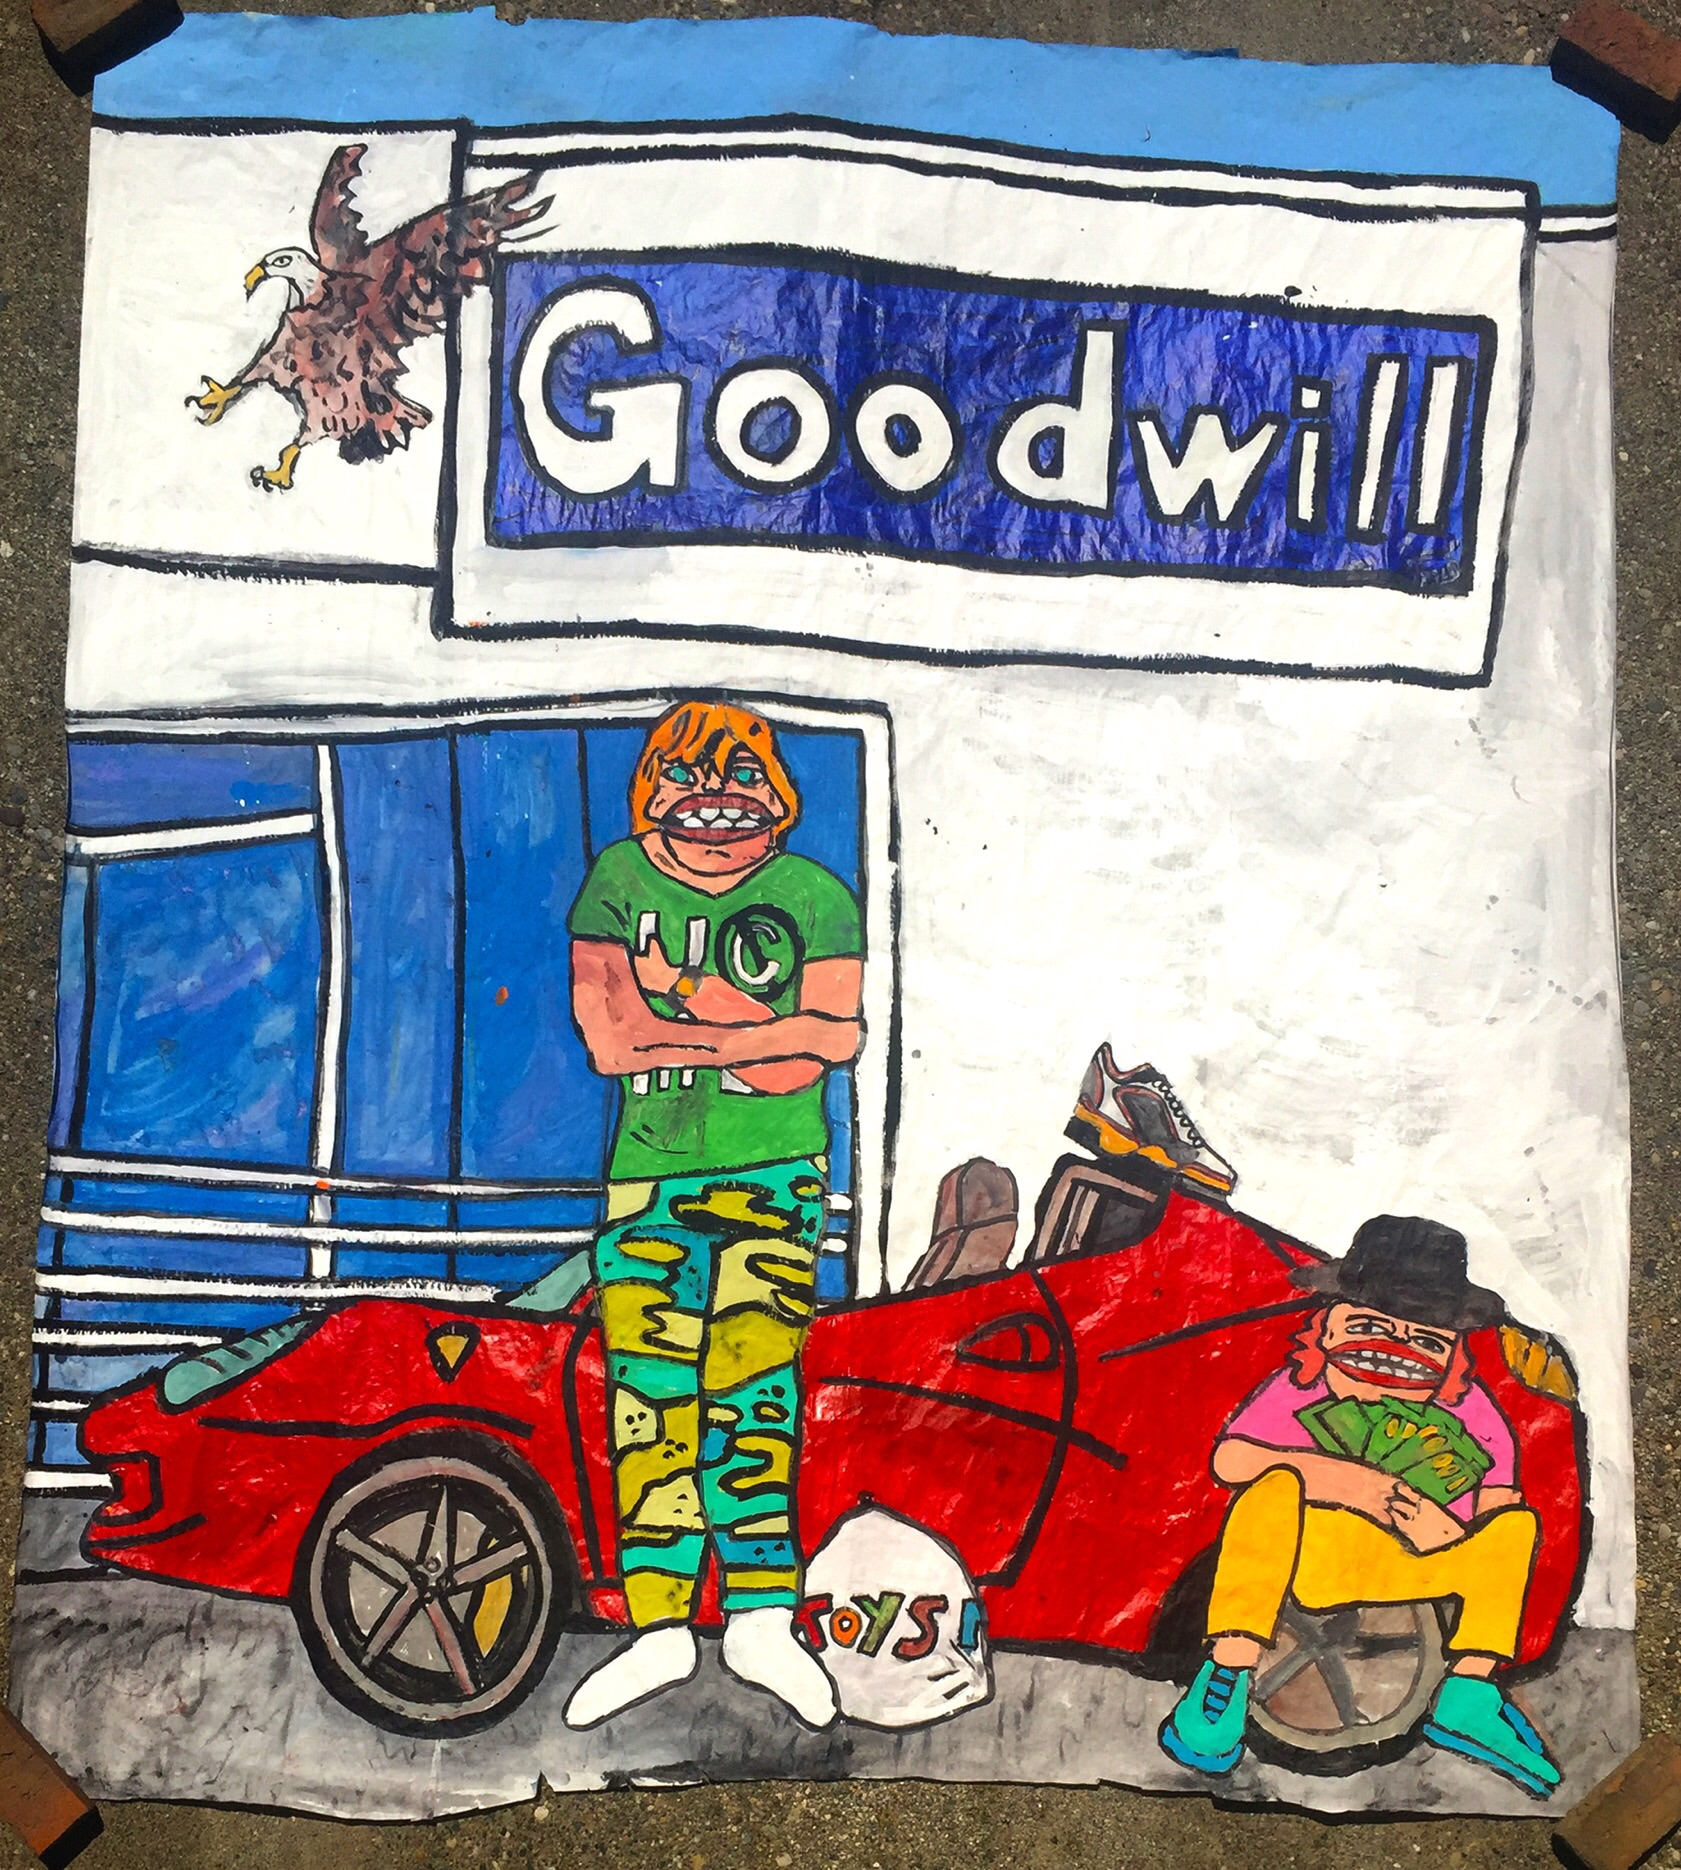 'Goodwill To All' $3,000,000.